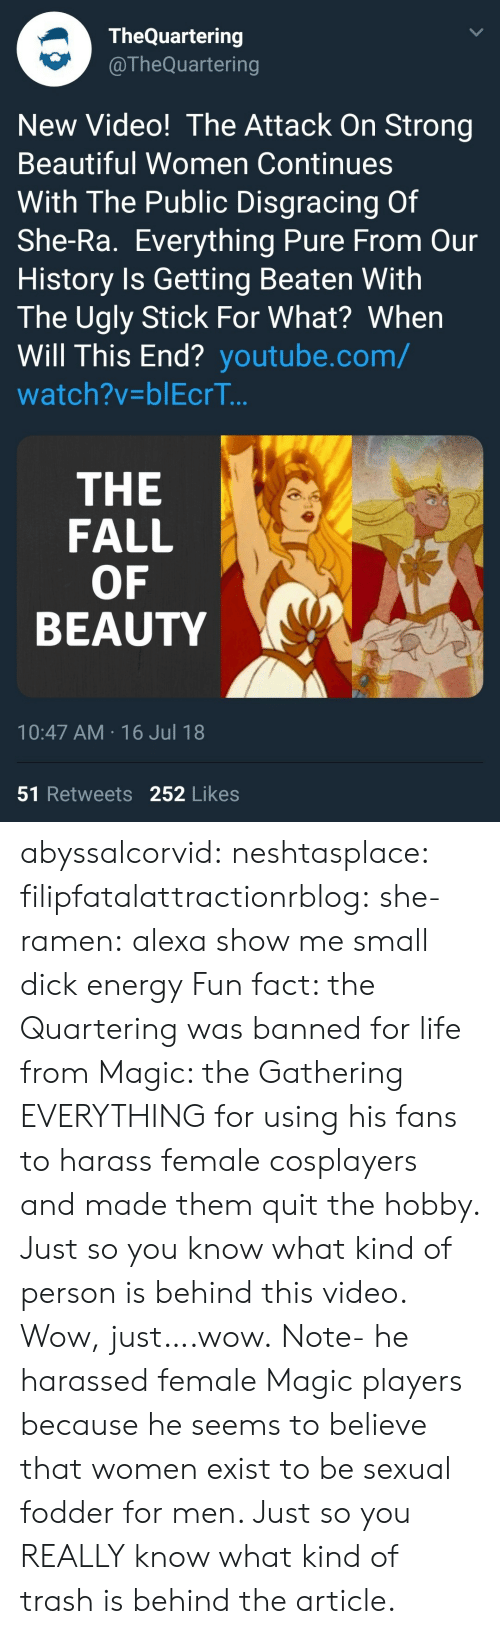 harass: TheQuartering  @TheQuartering  New Video! The Attack On Strong  Beautiful Women Continues  With The Public Disgracing Of  She-Ra. Everything Pure From Our  History Is Getting Beaten With  The Ugly Stick For What? When  Will This End? youtube.com/  watch?v-blEcrT..  THE  FALL  OF  BEAUTY  10:47 AM 16 Jul 18  51 Retweets 252 Likes abyssalcorvid: neshtasplace:  filipfatalattractionrblog:  she-ramen: alexa show me small dick energy Fun fact: the Quartering was banned for life from Magic: the Gathering EVERYTHING for using his fans to harass female cosplayers and made them quit the hobby. Just so you know what kind of person is behind this video.  Wow, just….wow.  Note- he harassed female Magic players because he seems to believe that women exist to be sexual fodder for men. Just so you REALLYknow what kind of trash is behind the article.